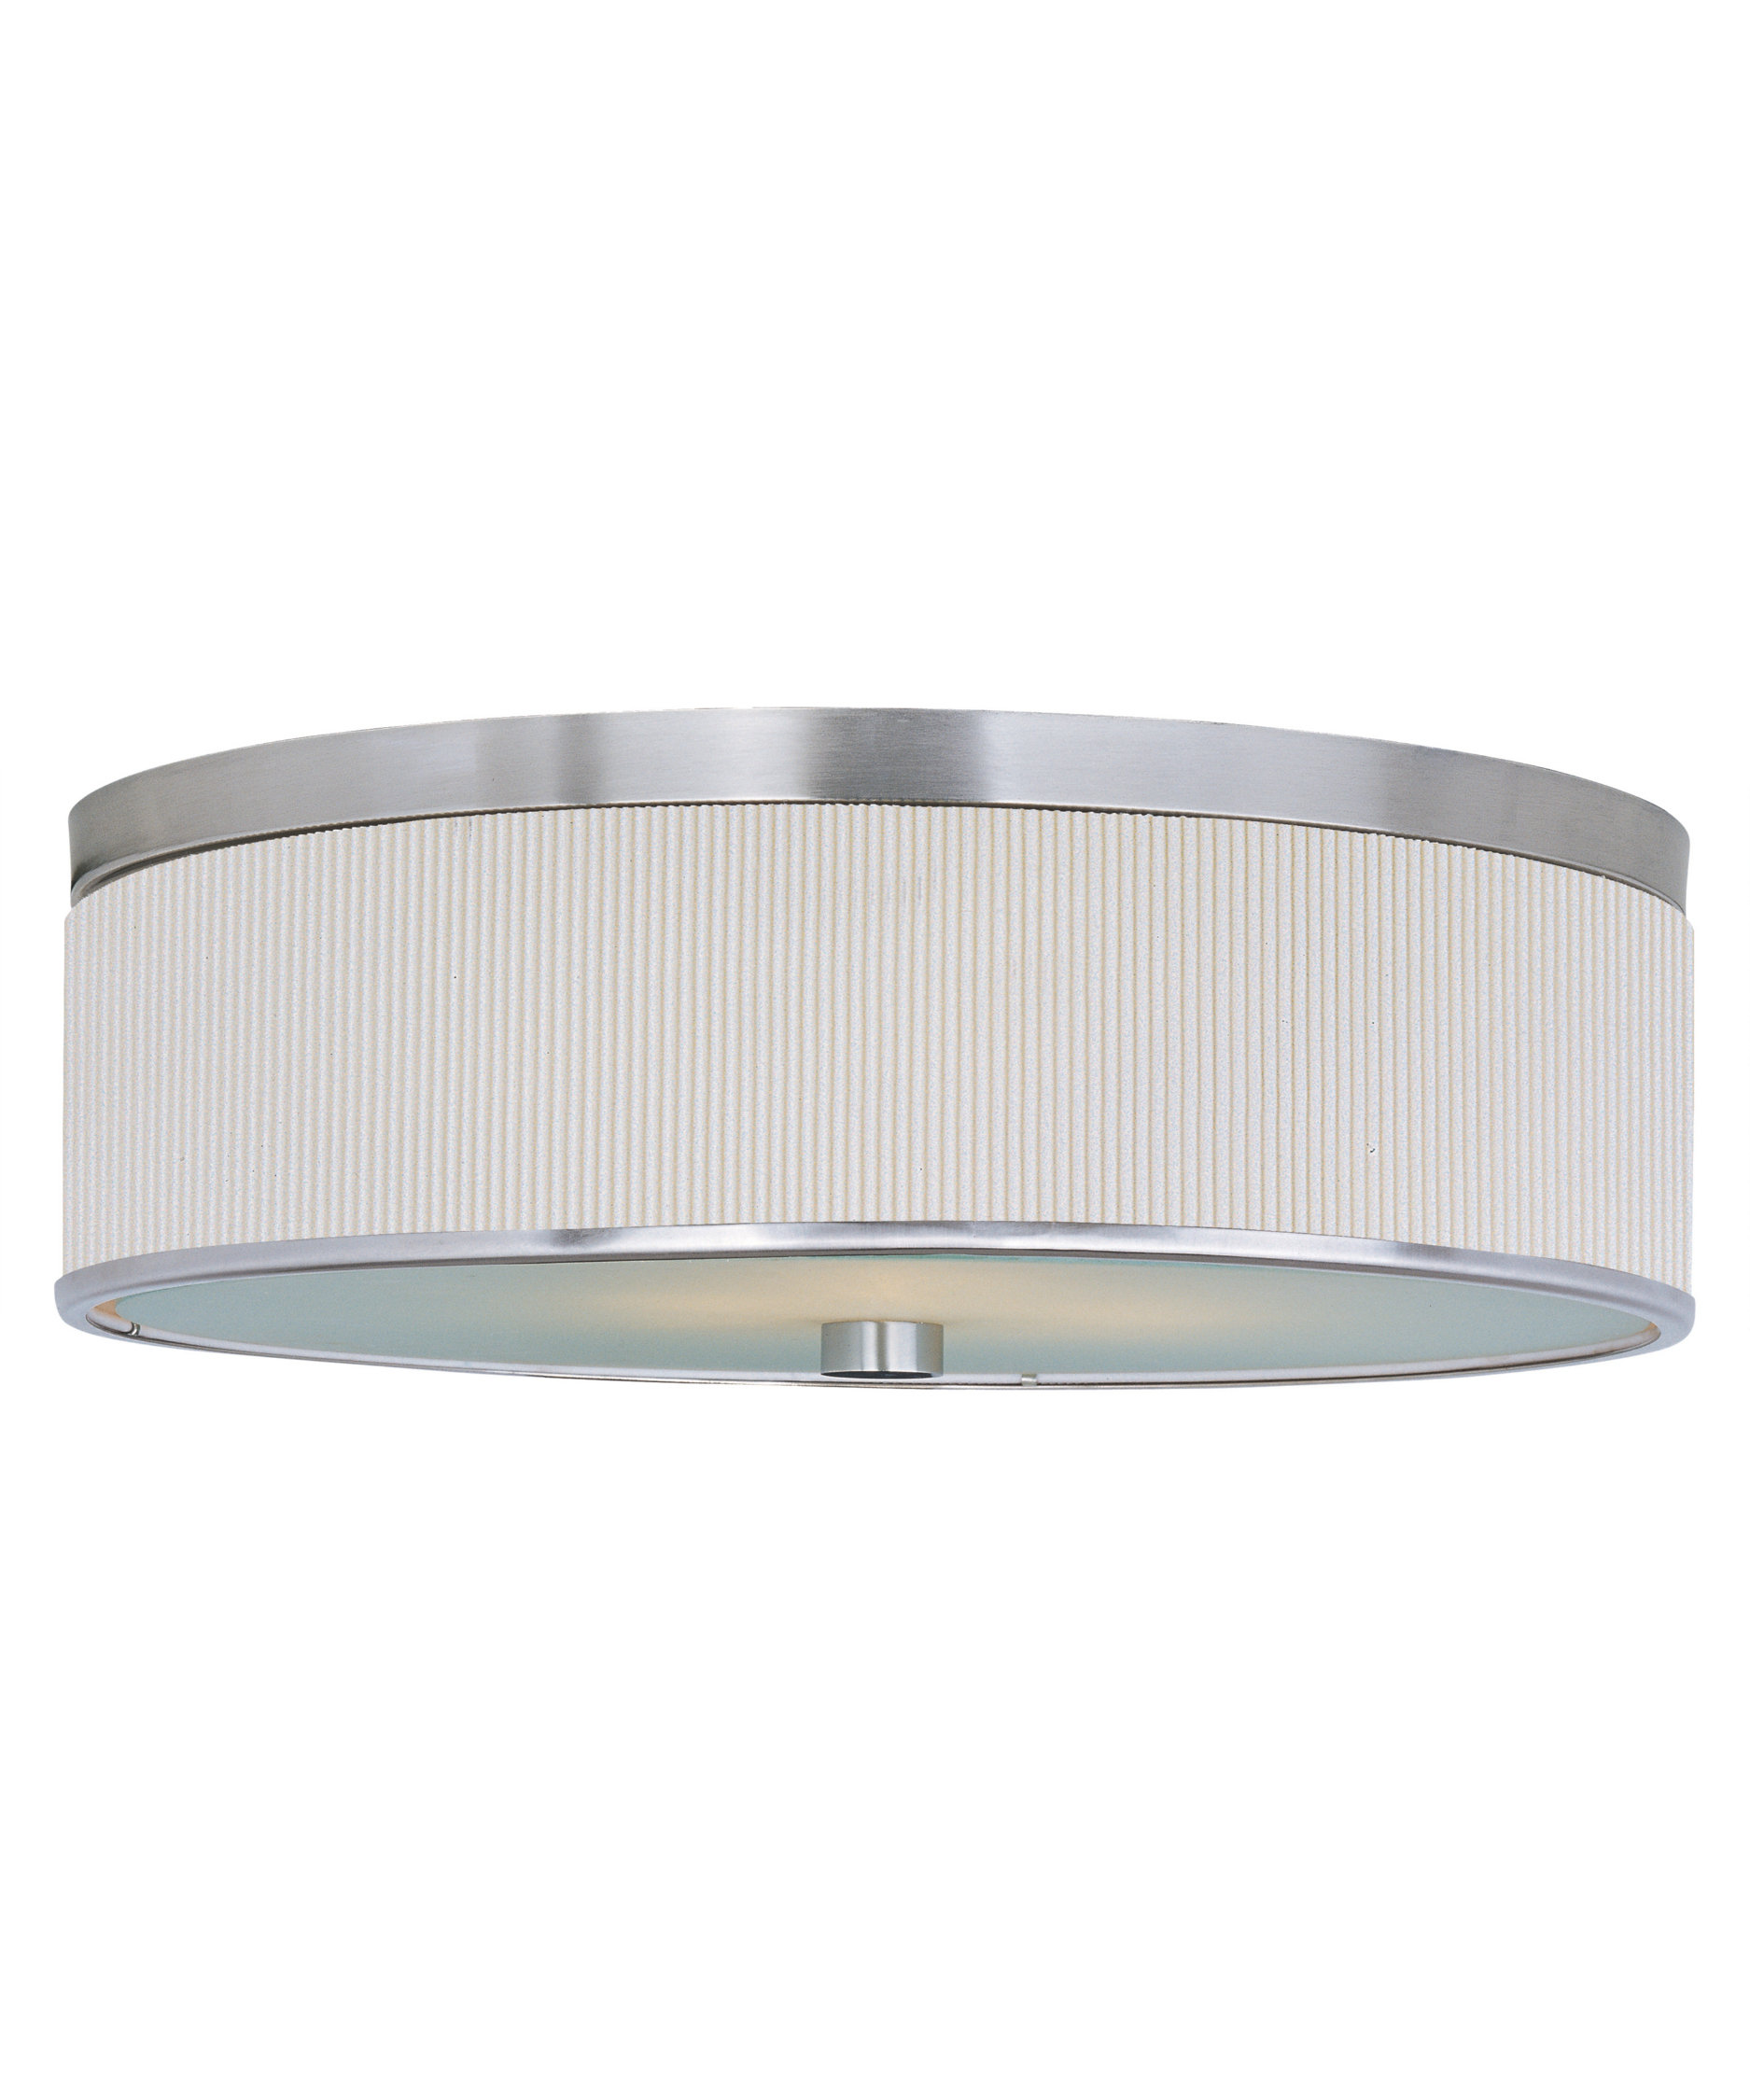 Lamp & Lighting Charming Flush Mount Lighting For Home Lighting